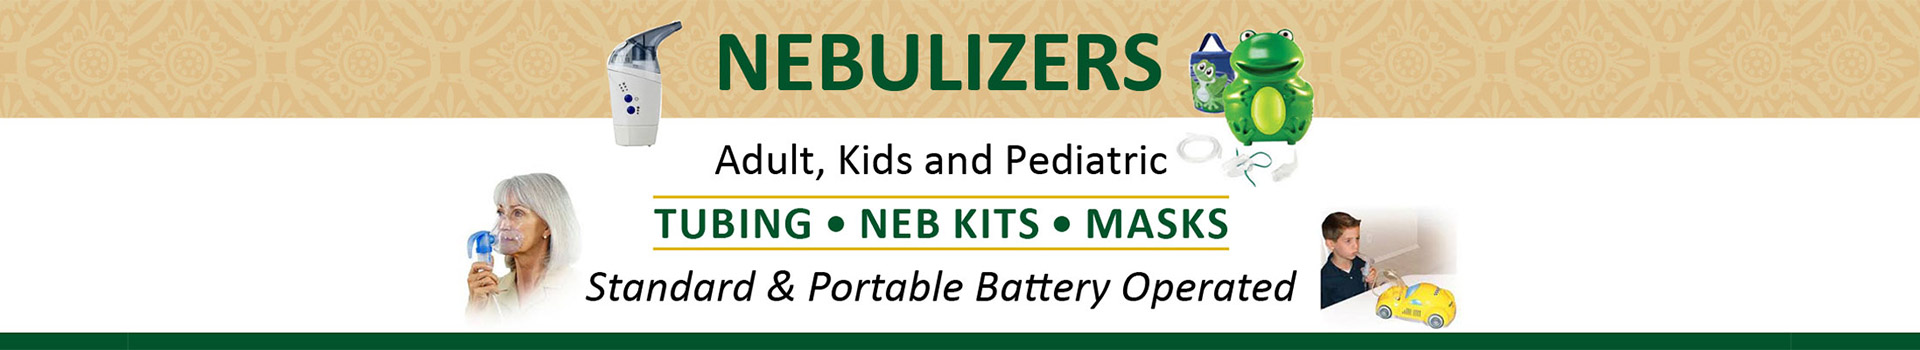 nebulizers-banner